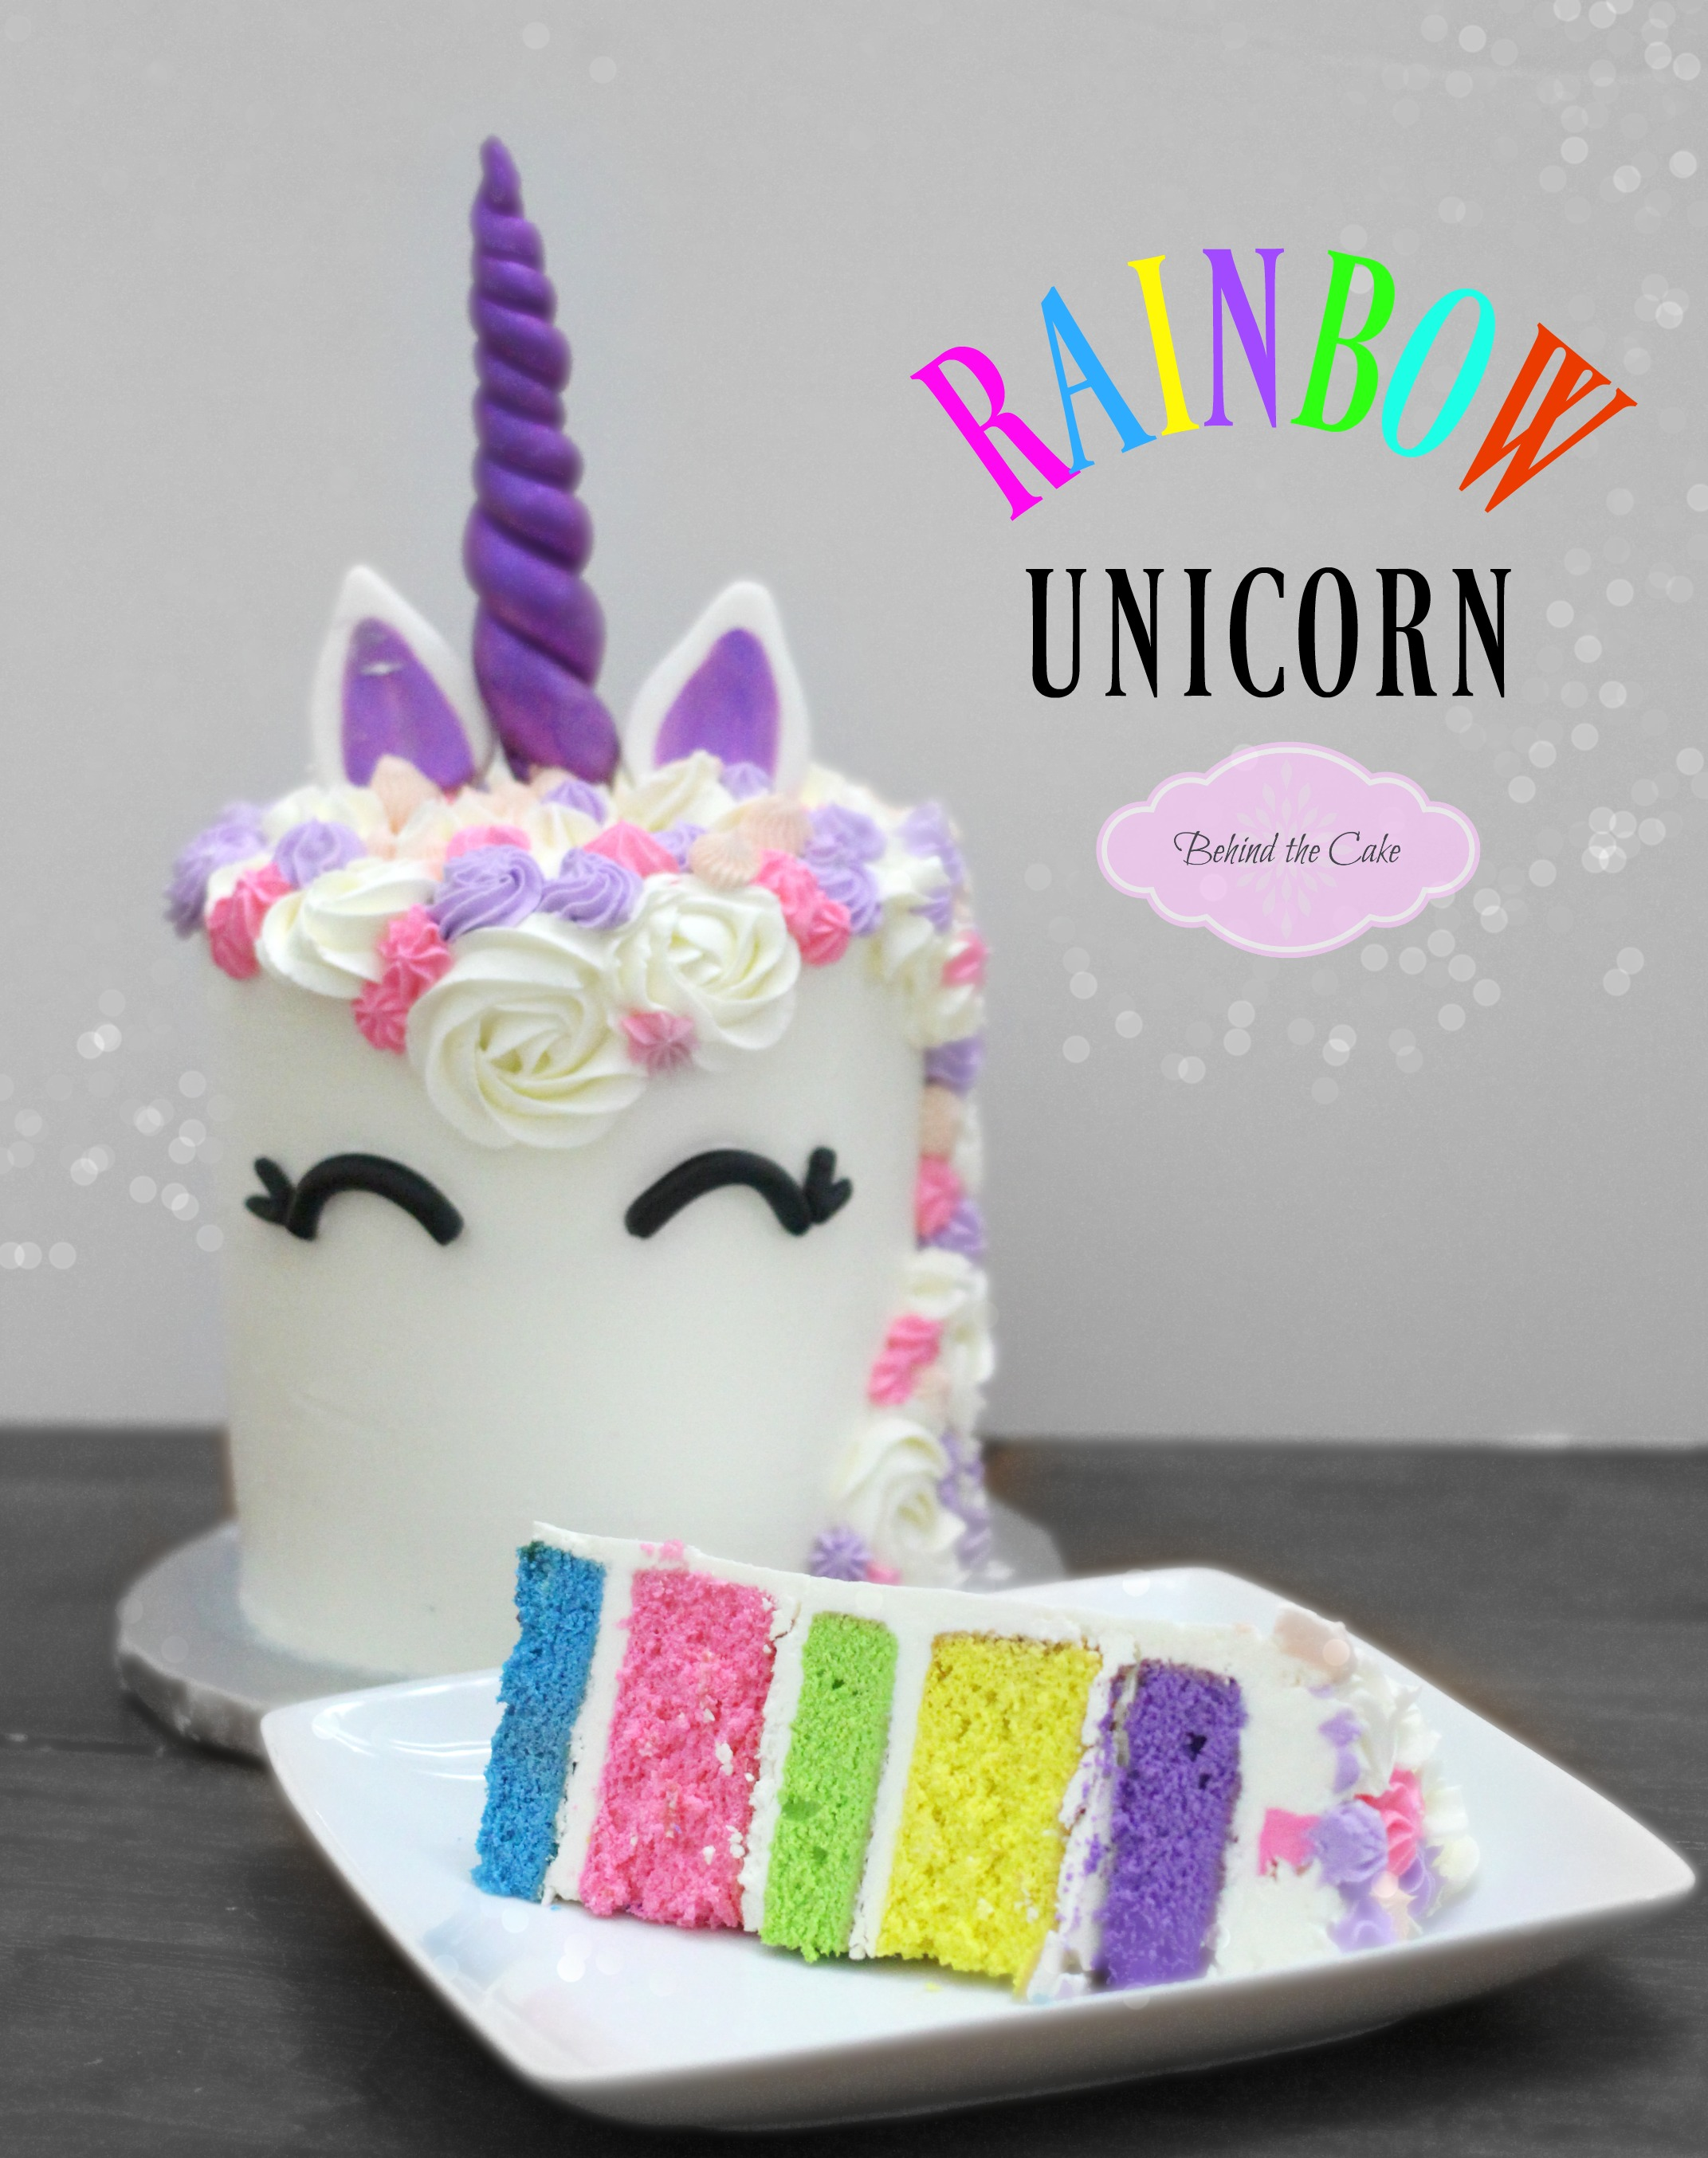 Behind the cake- Unicorn cake, how to make a unicorn cake